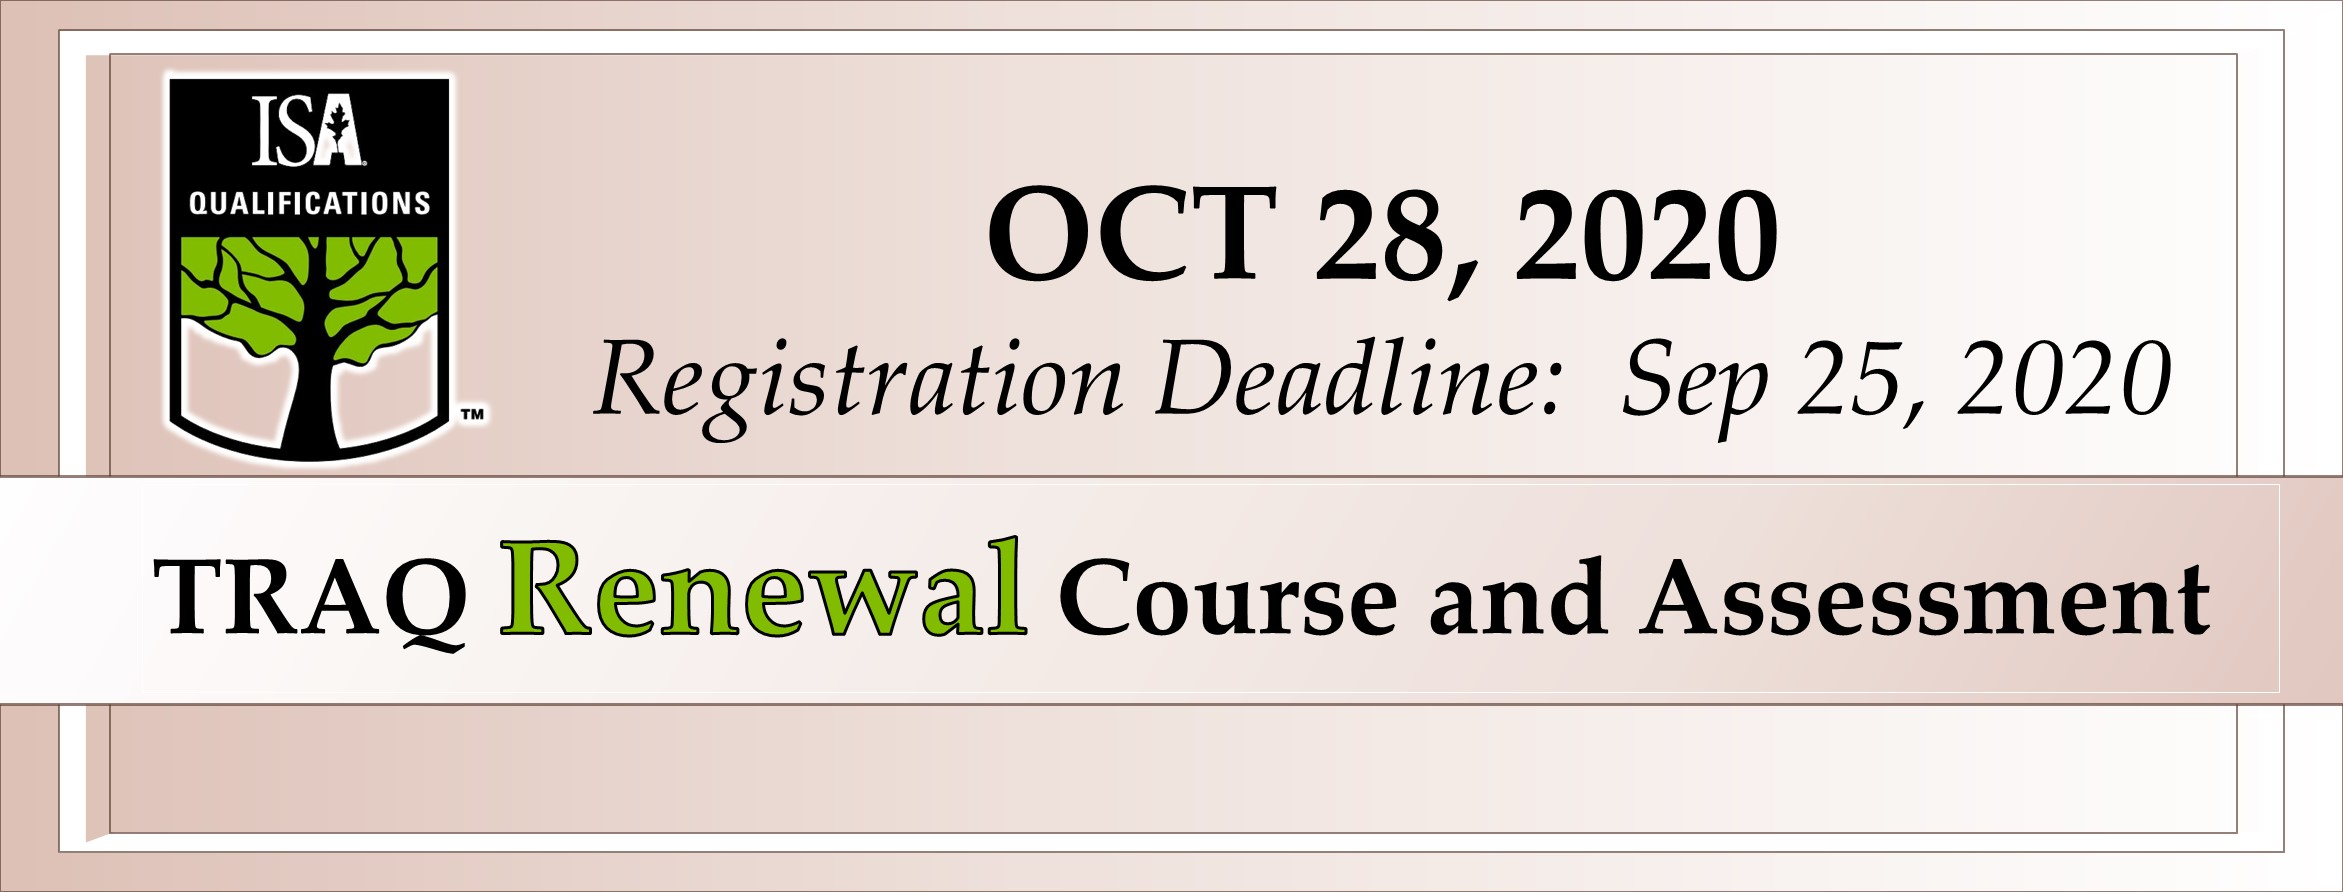 TRAQ Renewal Course & Assessment